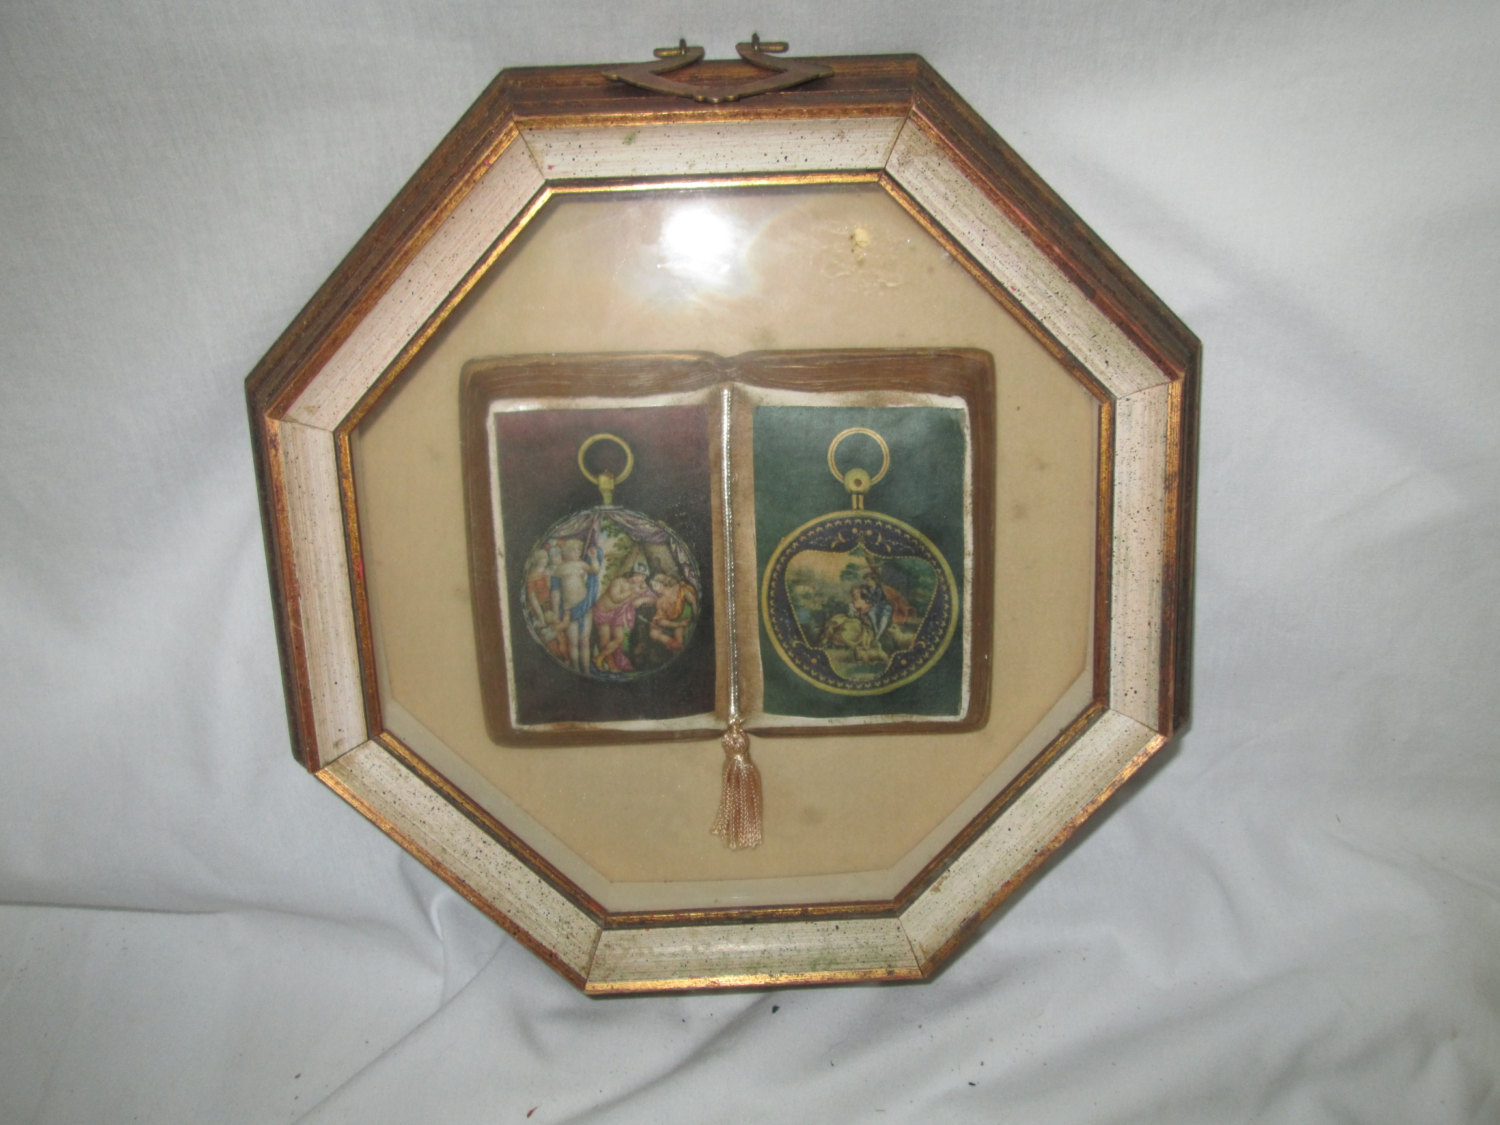 Vintage 1950 S Wooden Shadow Box Frame Contents Are A Victorian Scene Book Hex Shape Gl And Collectible Wall Decor